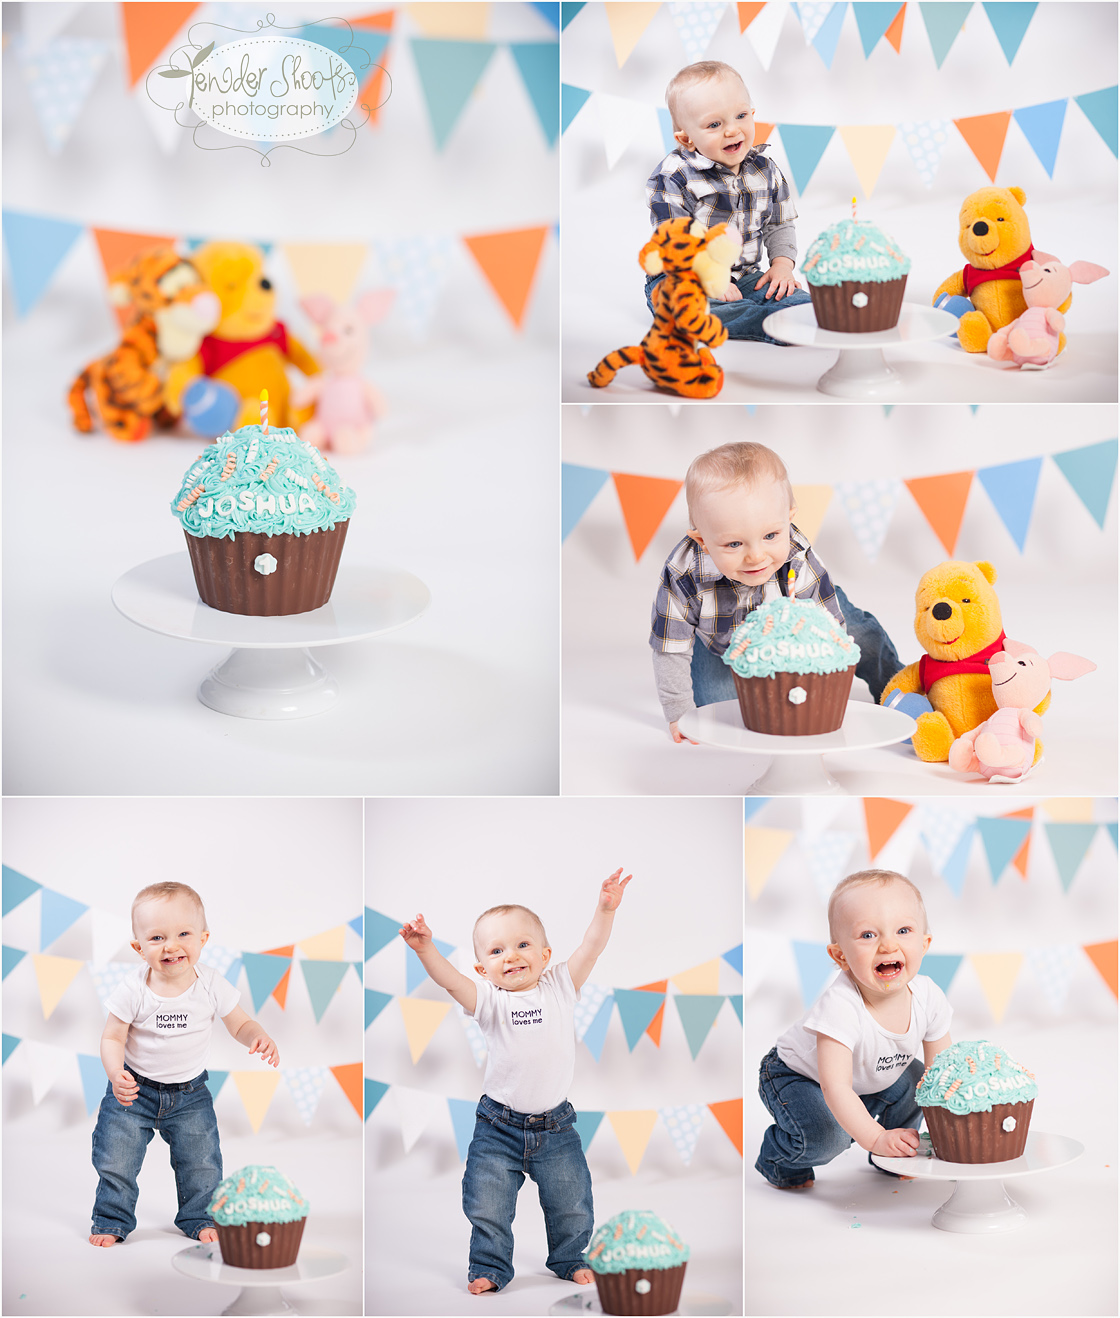 Tender Shoots Photography Cake Smash